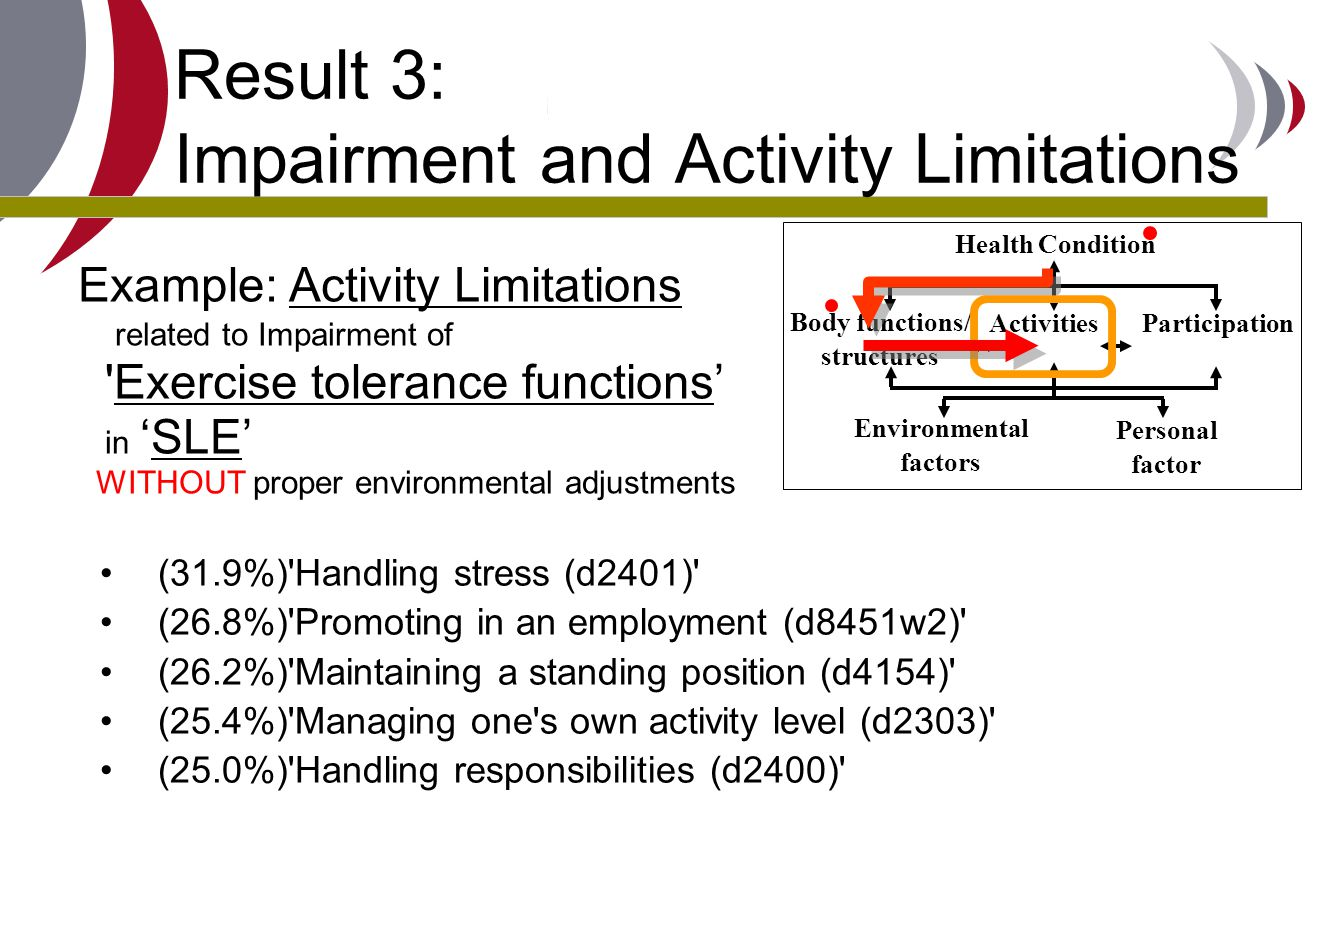 Result 3: Impairment and Activity Limitations